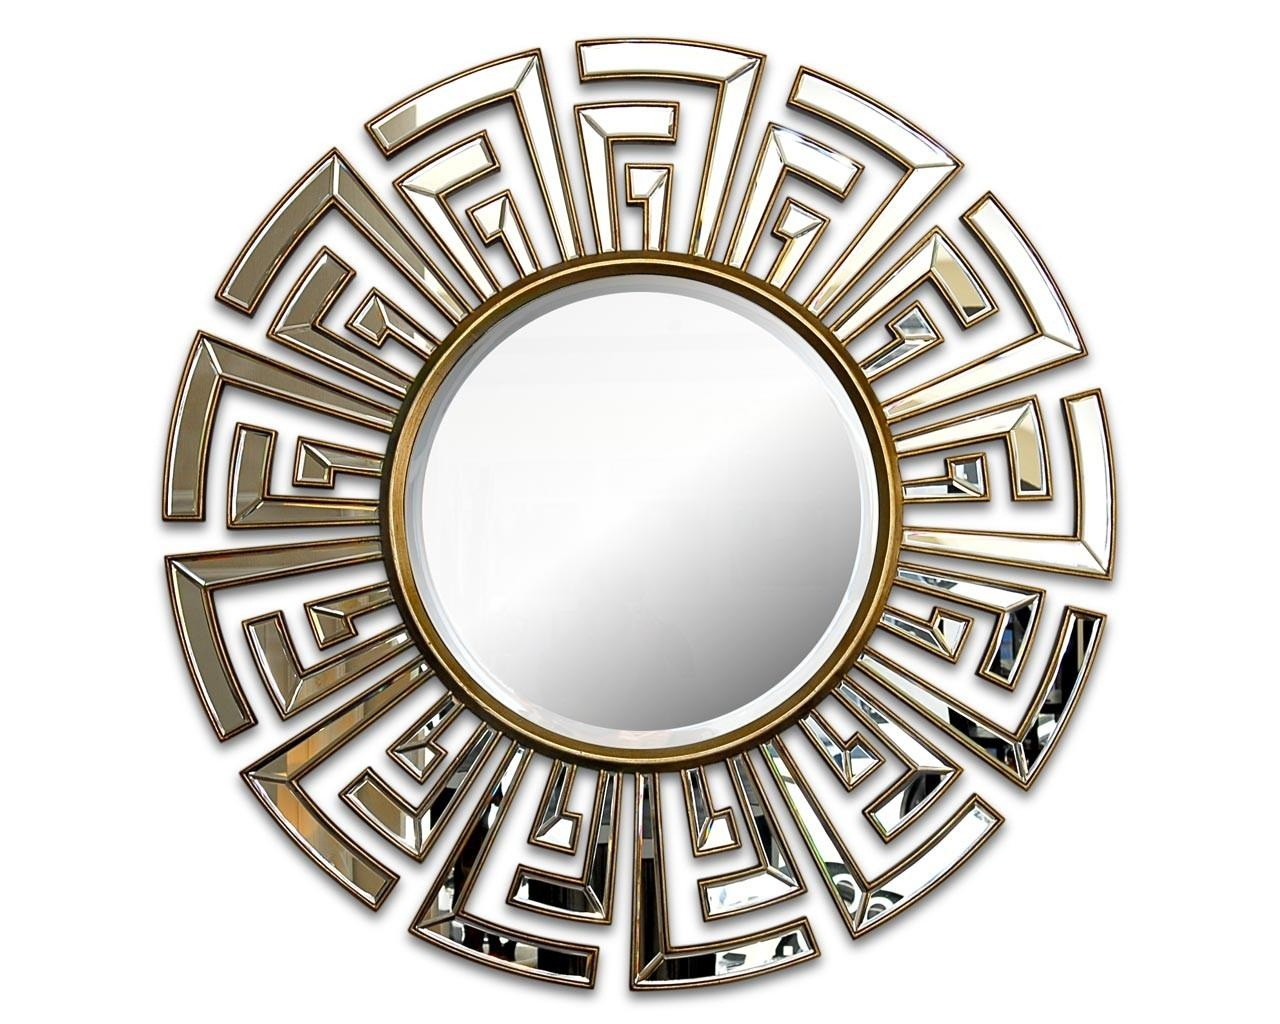 Contemporary Art Deco Round Mirror | Statement Circular Mirrors Regarding Art Deco Mirrors (Photo 8 of 20)